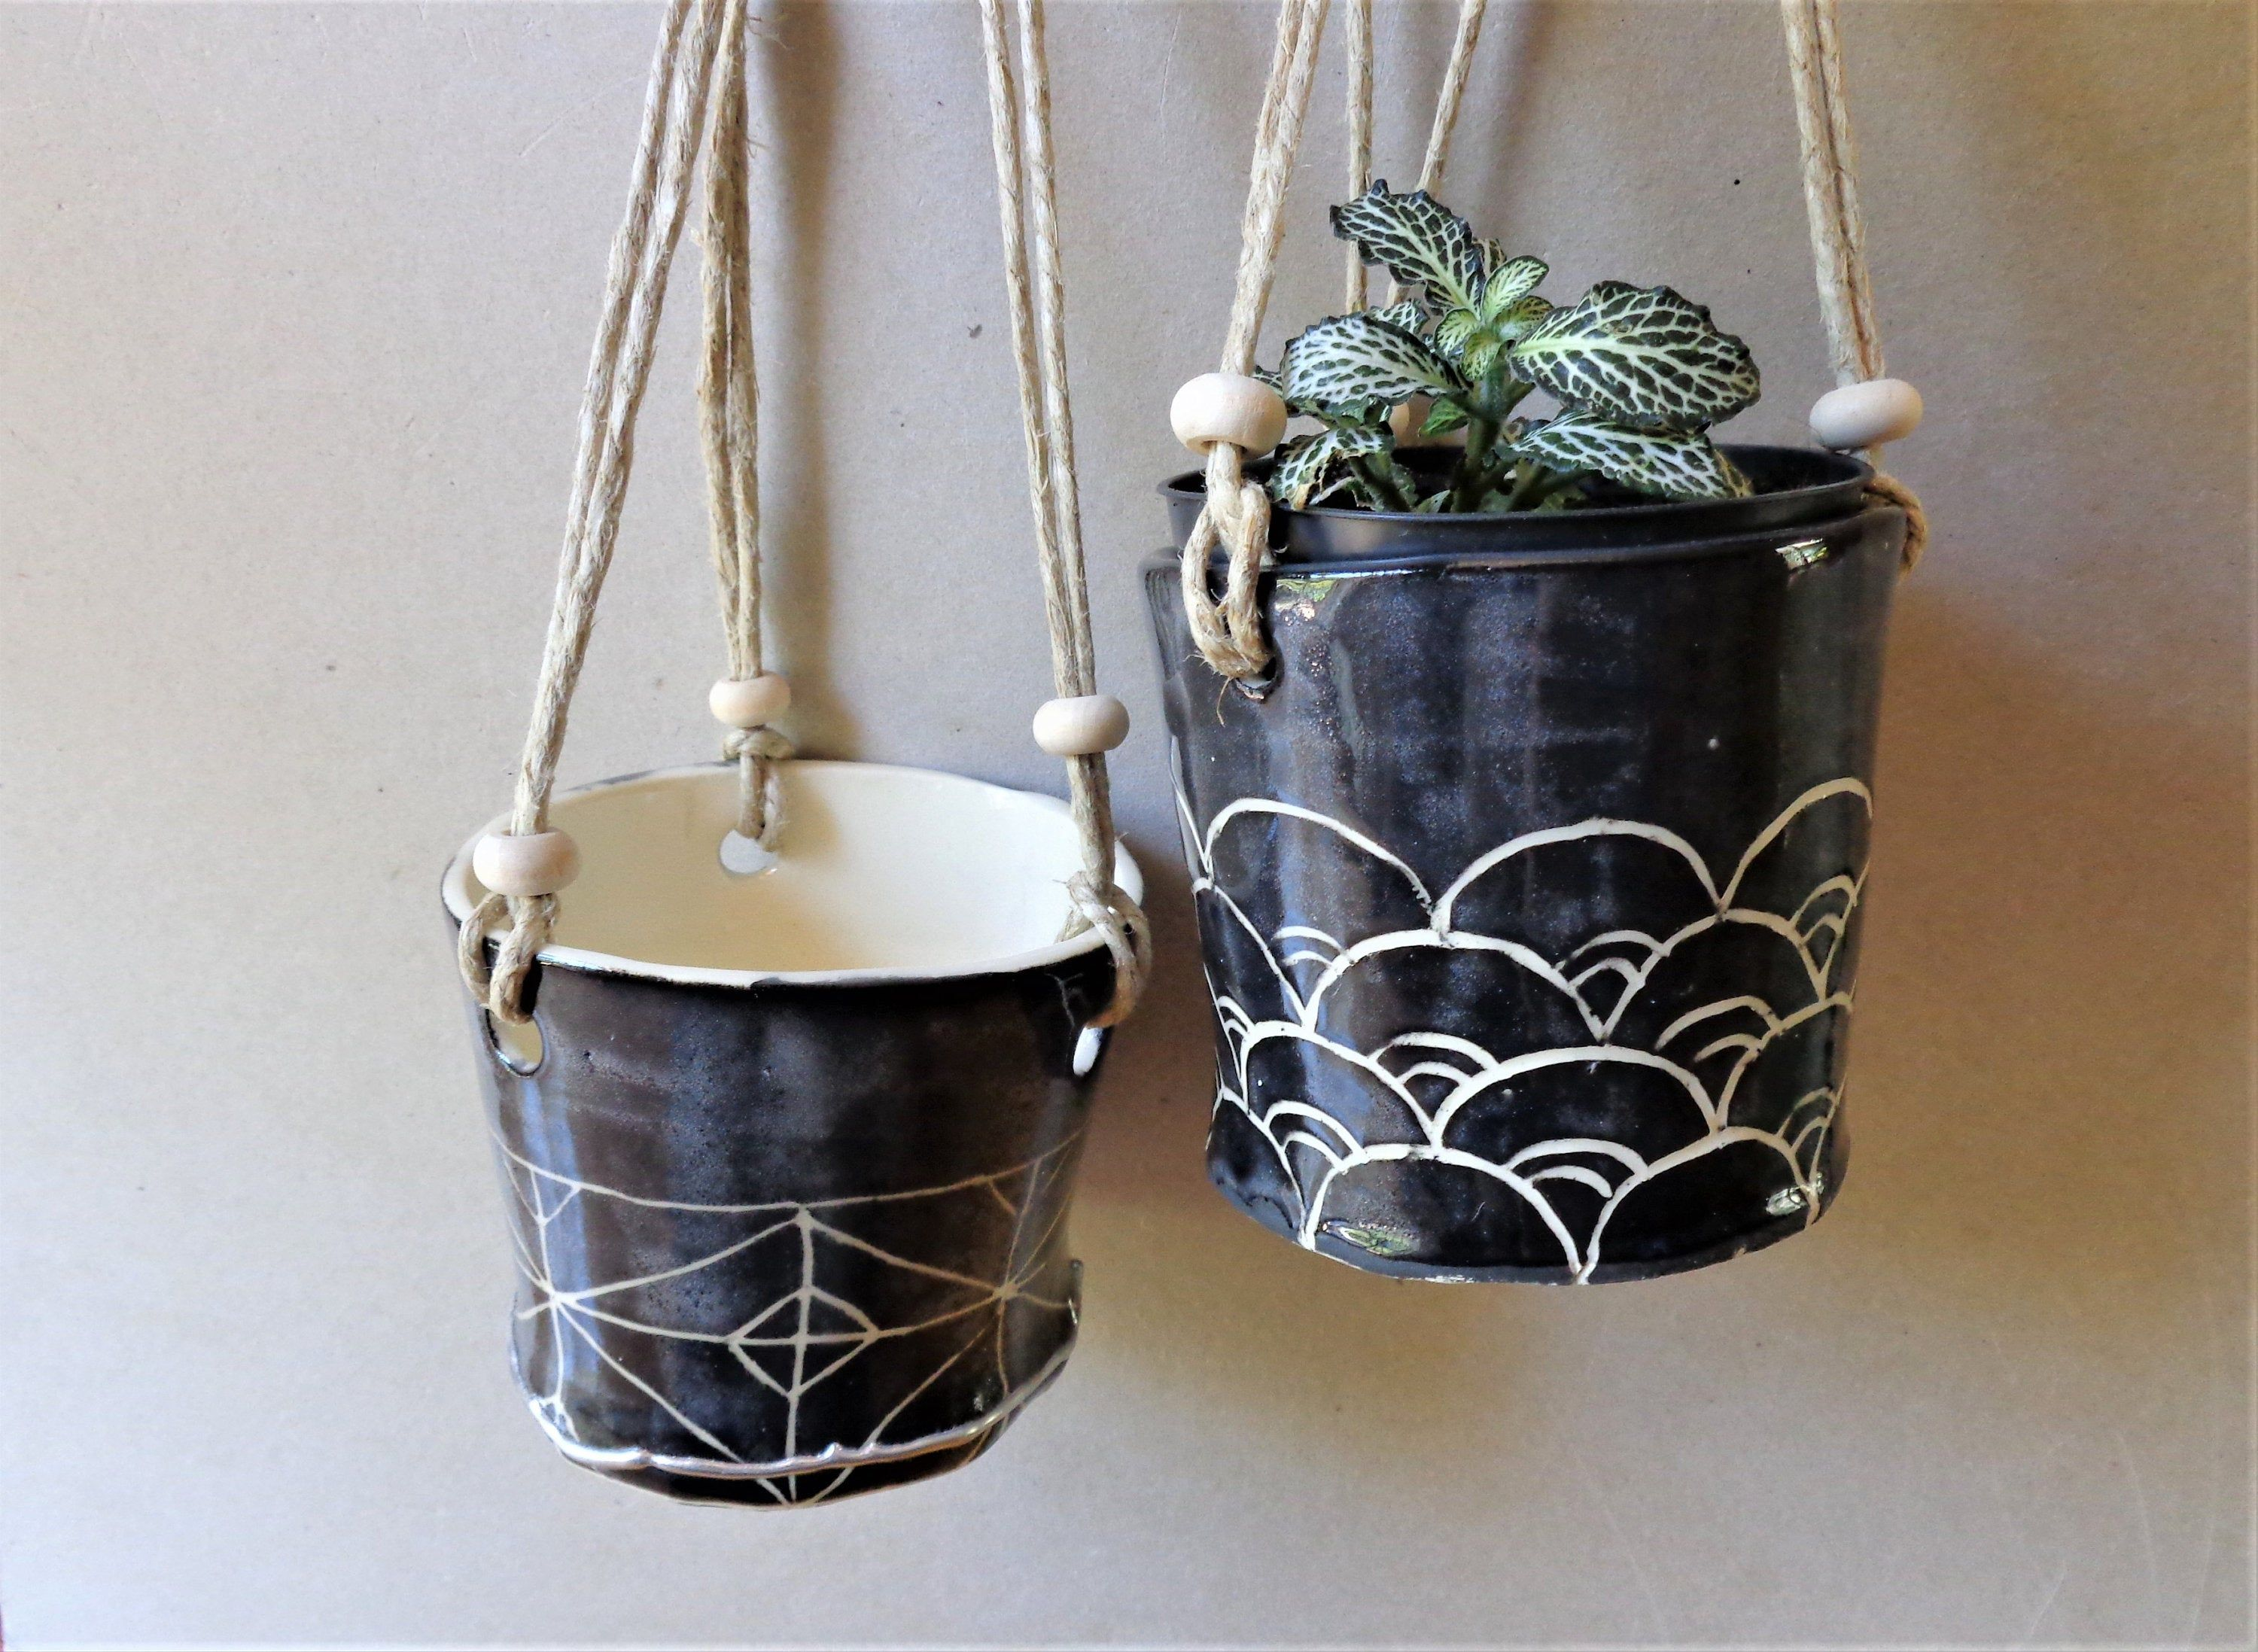 Small Black Sgrafitto Textured Hanging Planter Rustic Round Indoor Or Outdoor Hanging Planter Pot Home Garden Patio Verandah Decor In 2020 Rustic Pottery Hanging Planters Etsy